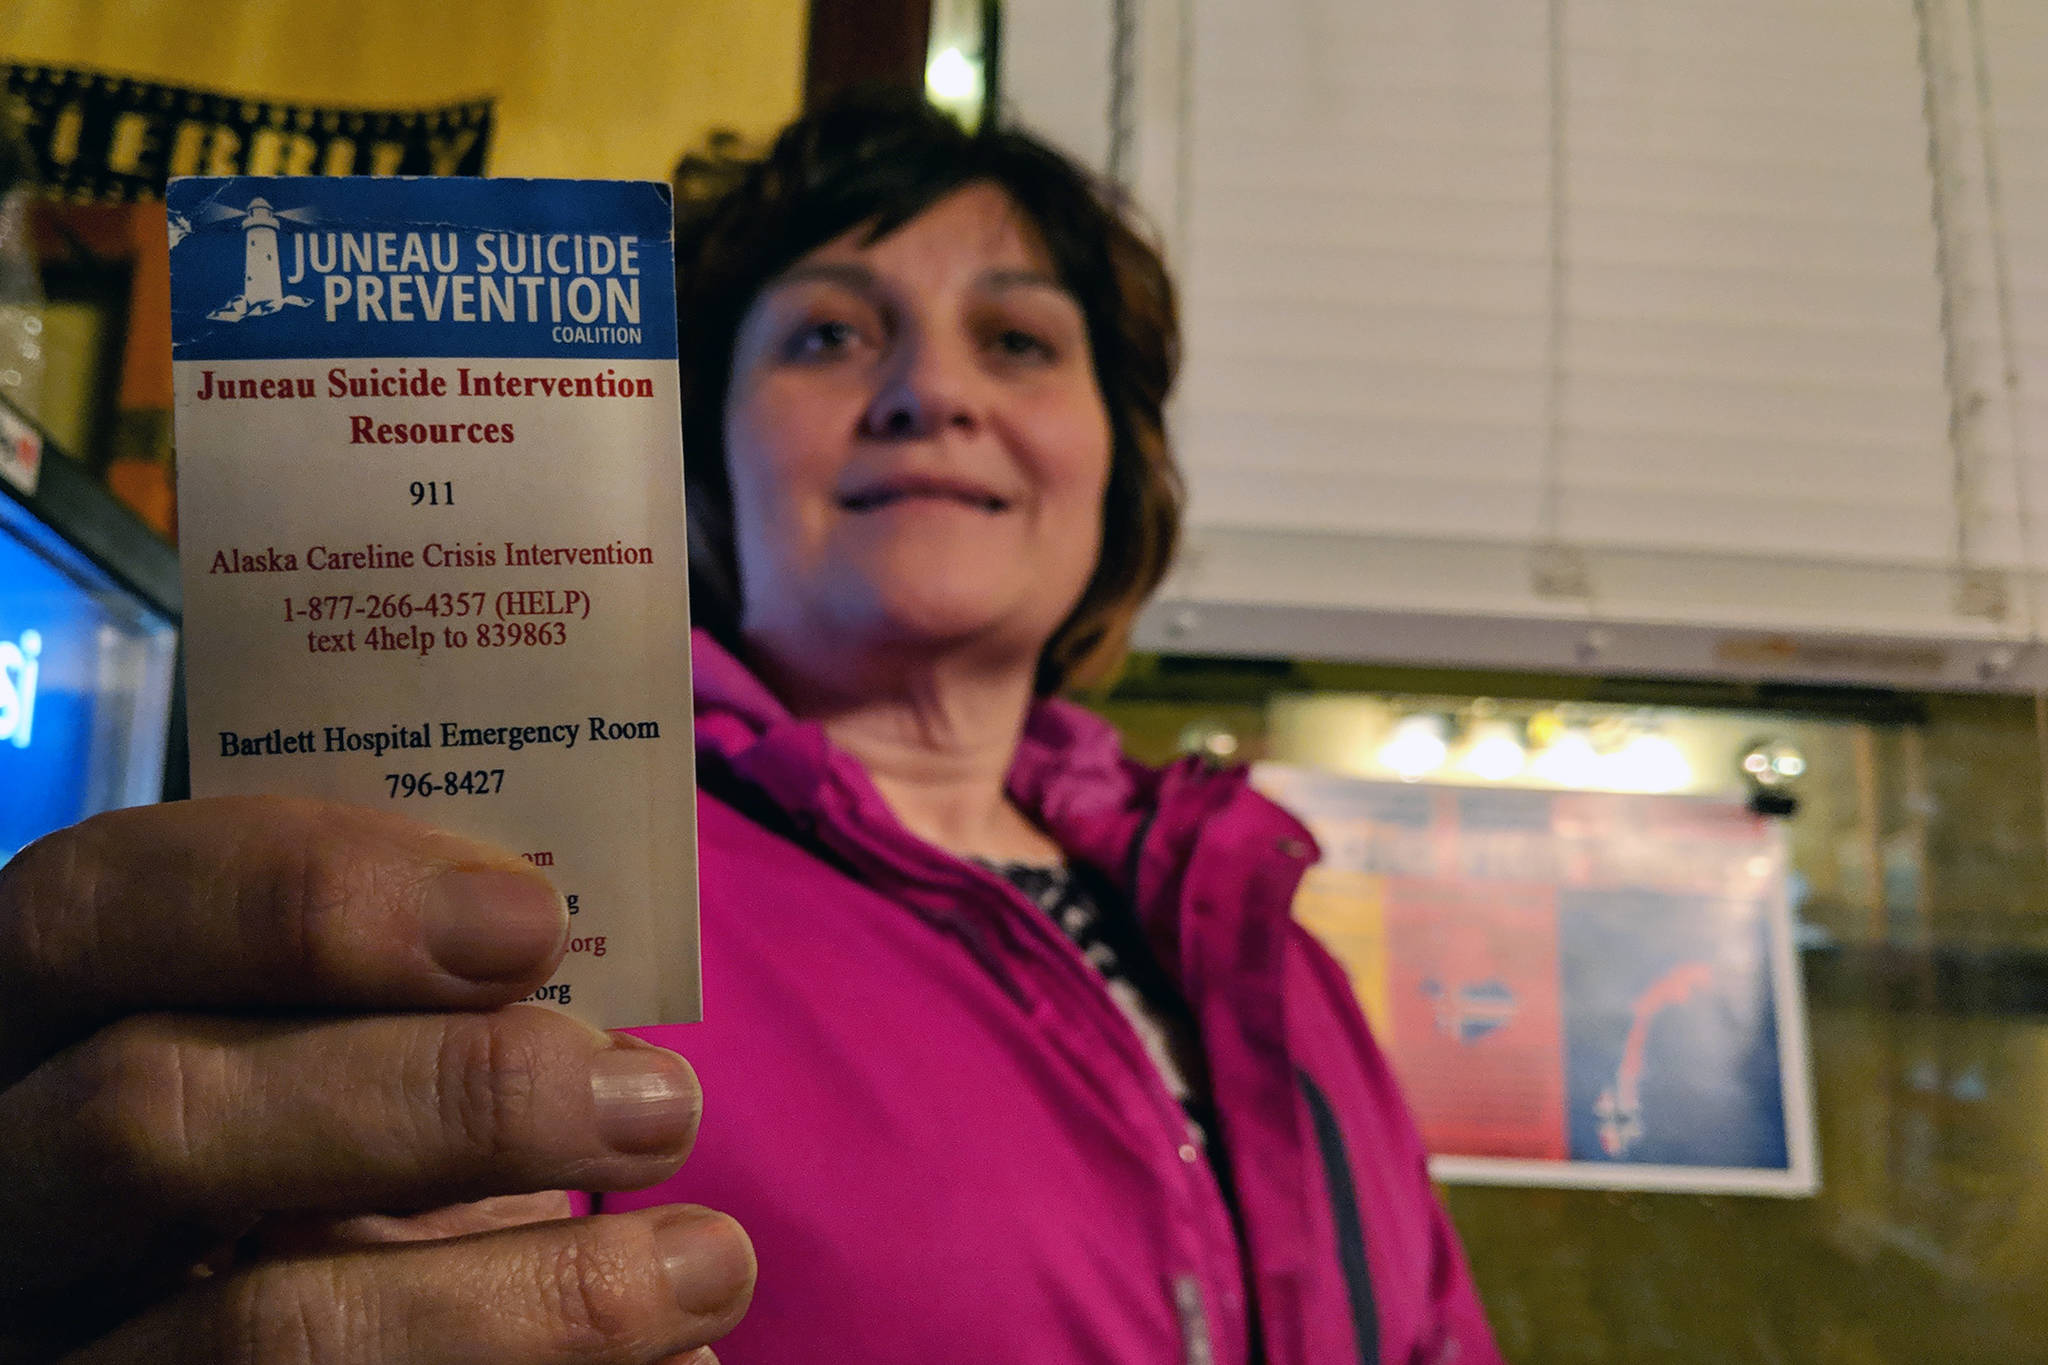 """Jan Reece, outreach/training specialist for Juneau Suicide Prevention Coalition, holds up a card with contact information for suicide prevention resources after a screening of """"The S-Word"""" at Gold Town Theater in March 2019. (Ben Hohenstatt 